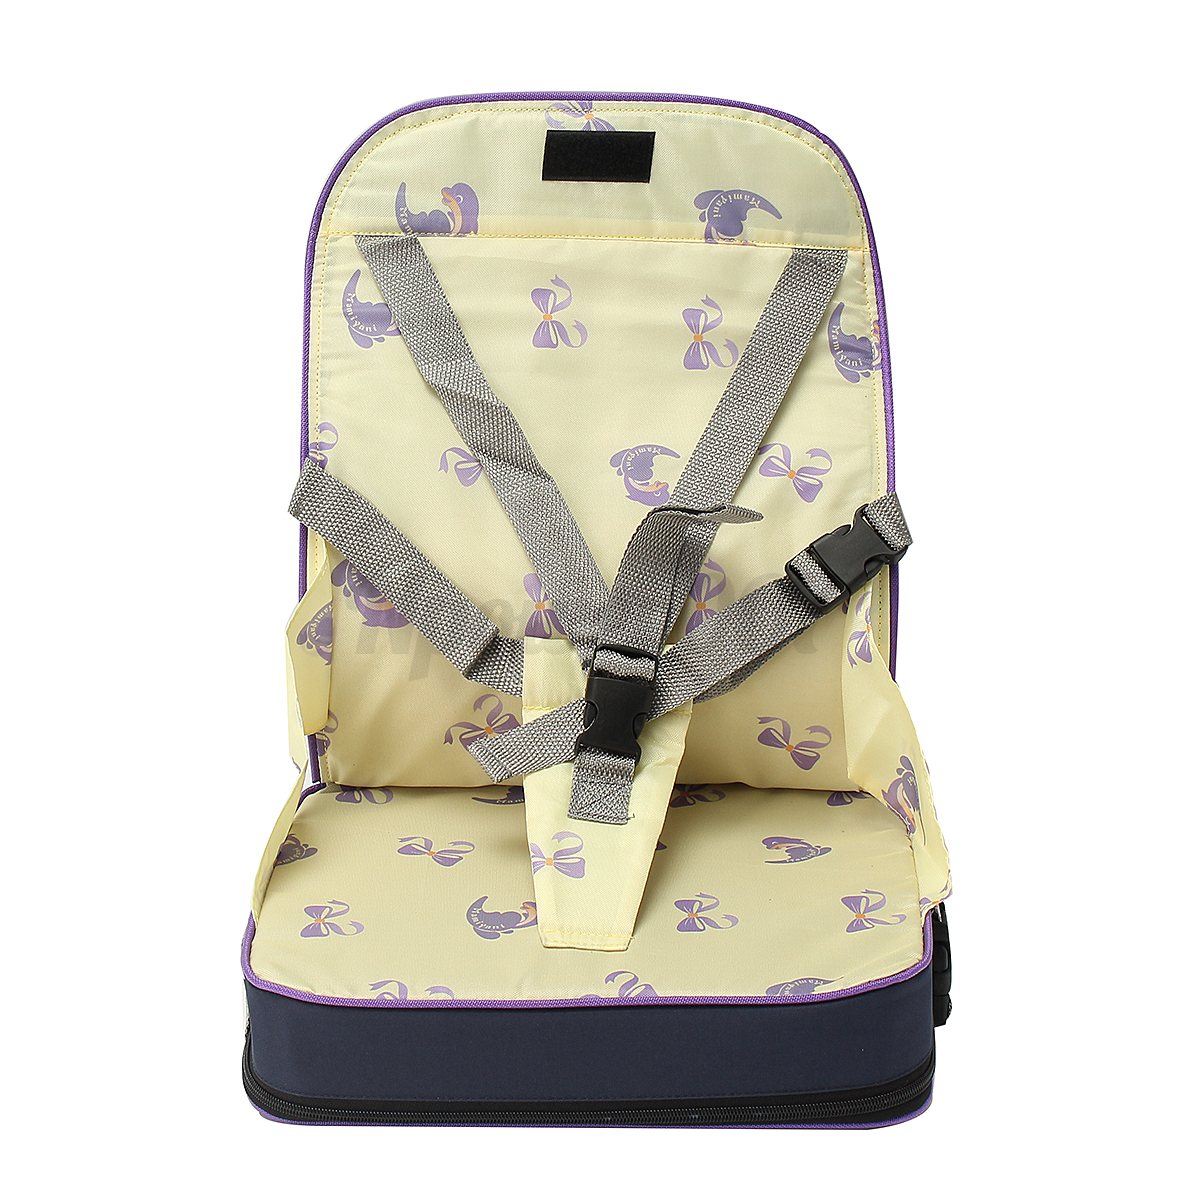 Portable Baby Toddler Dining High Chair Feeding Booster ...